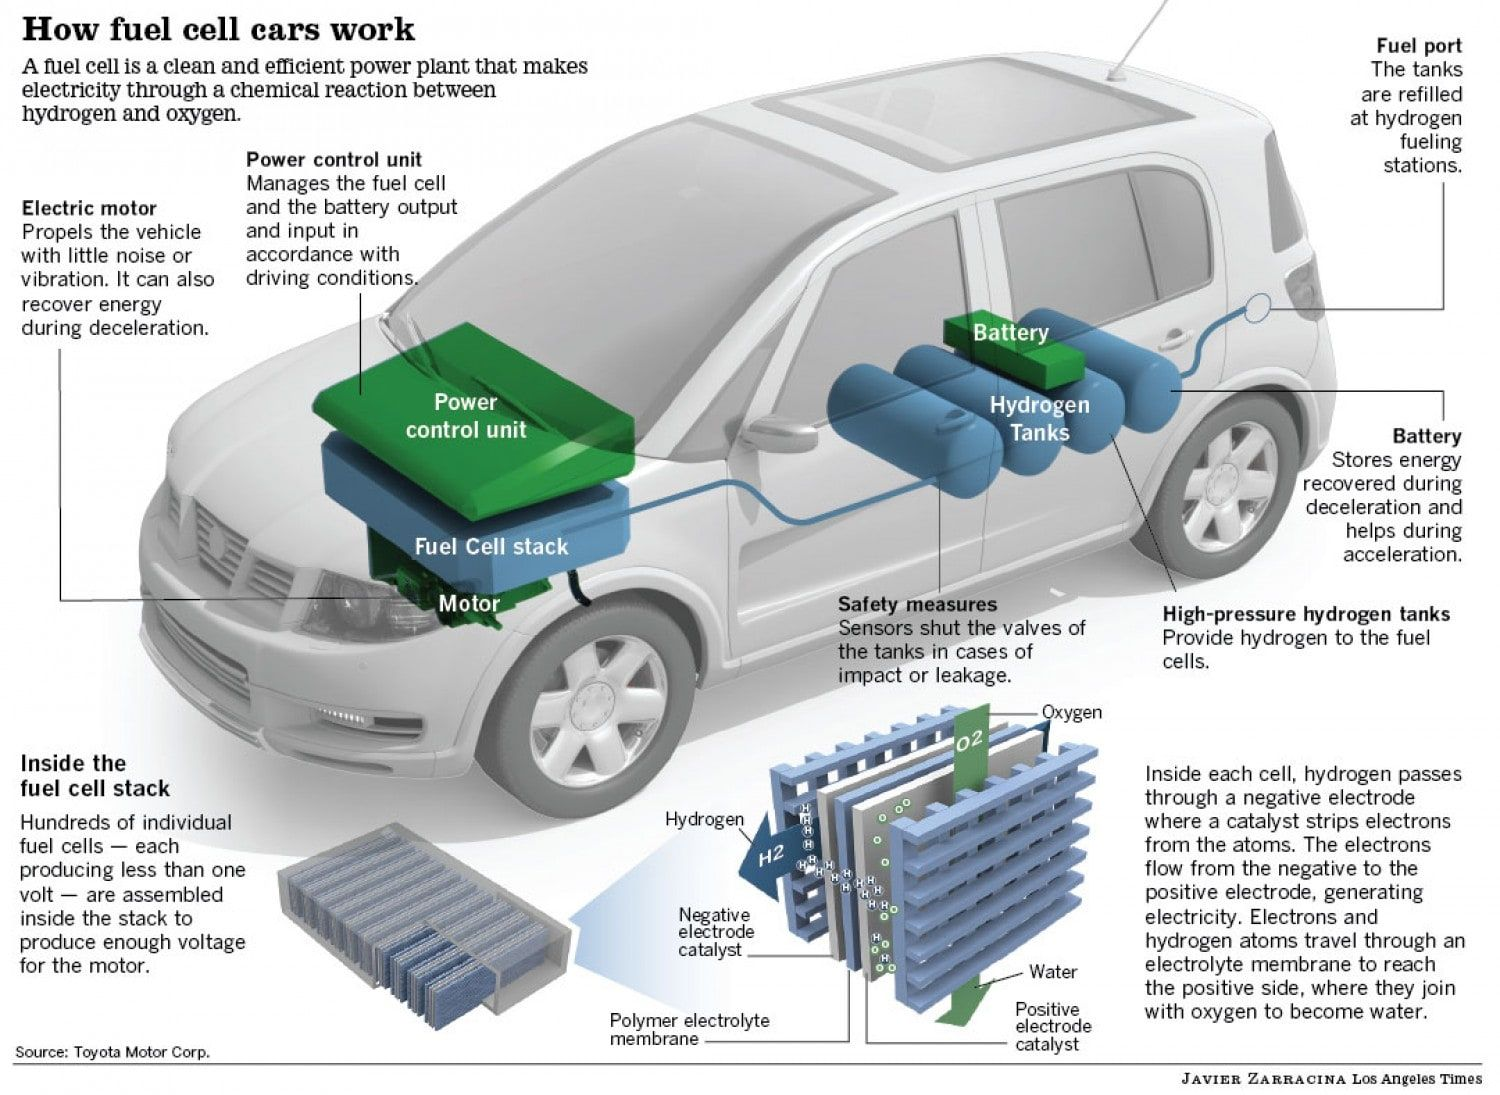 hydrogen fuelled cars Yahoo Image Search results Fuel